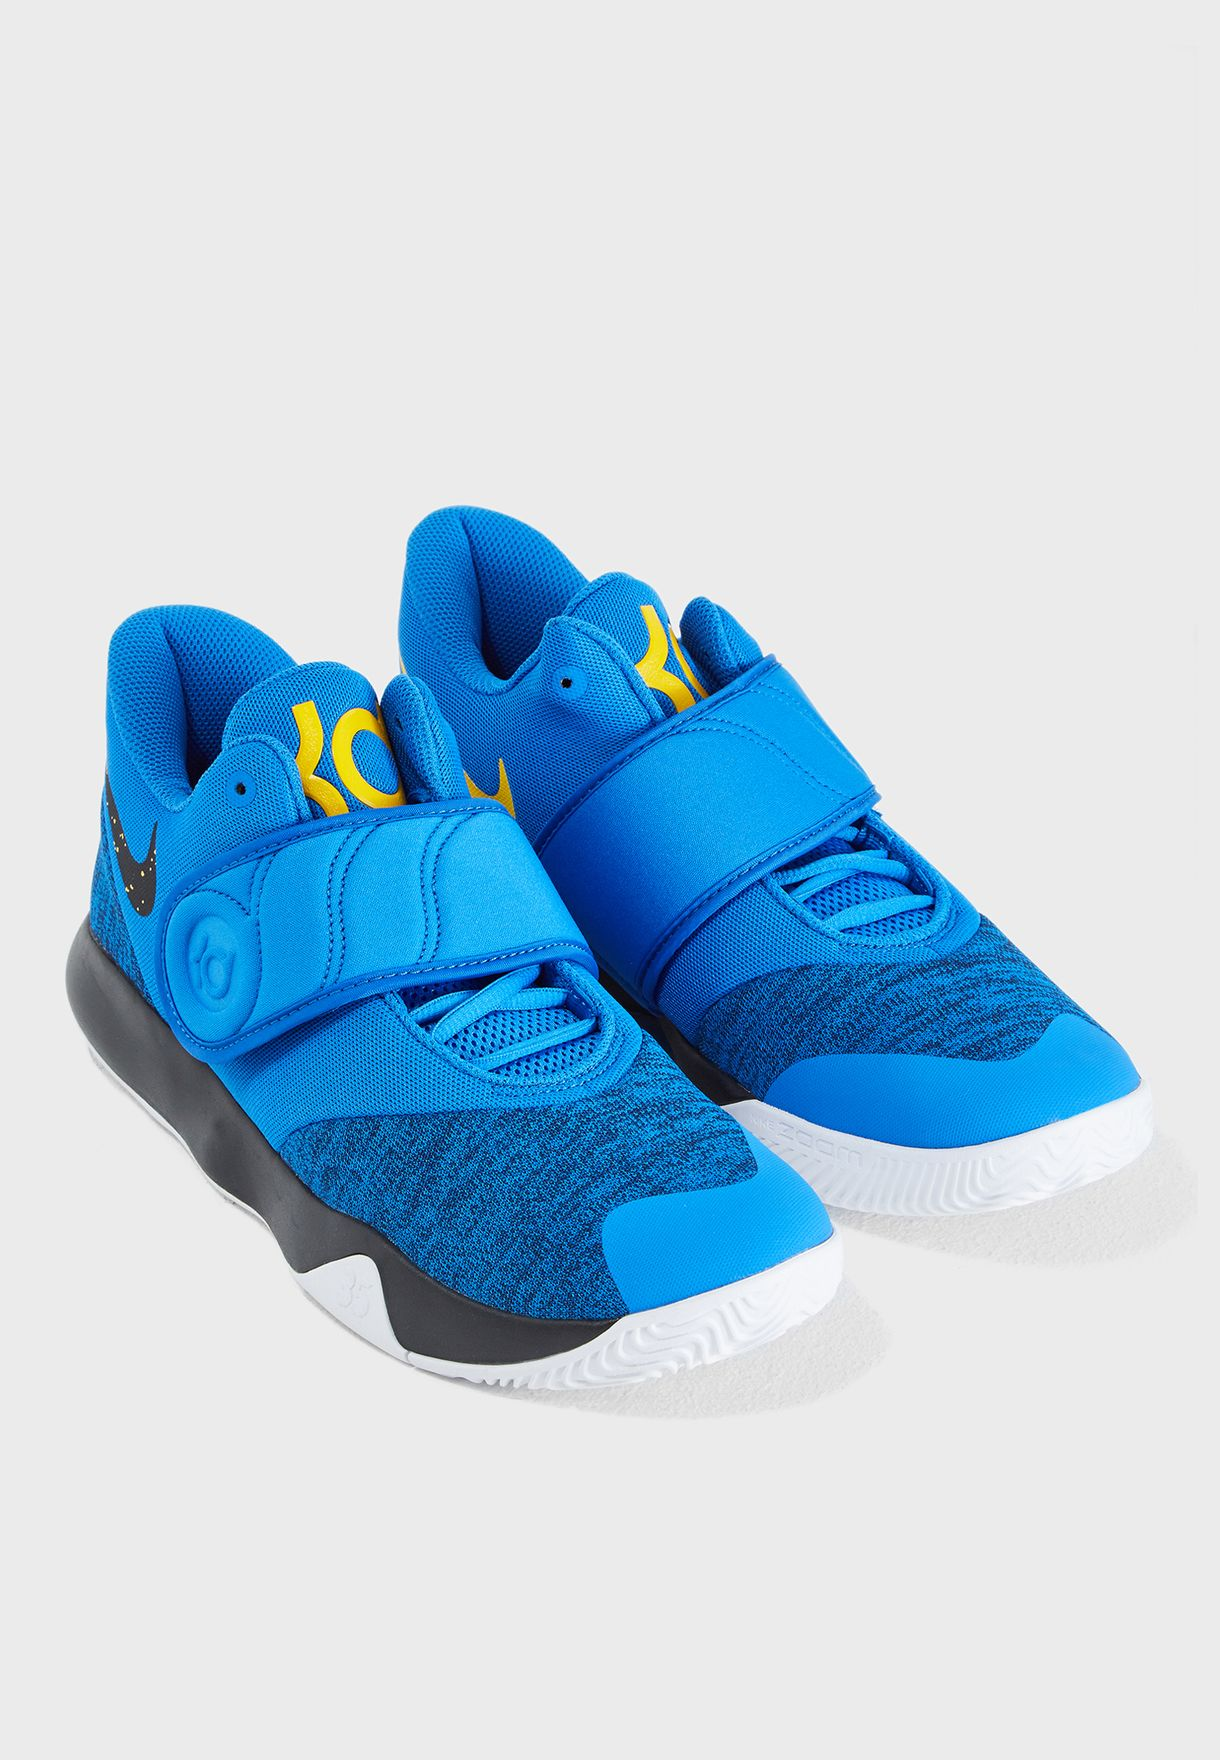 6b7d913eaa4c Shop Nike blue Kevin Durant Trey 5 VI AA7067-401 for Men in UAE ...